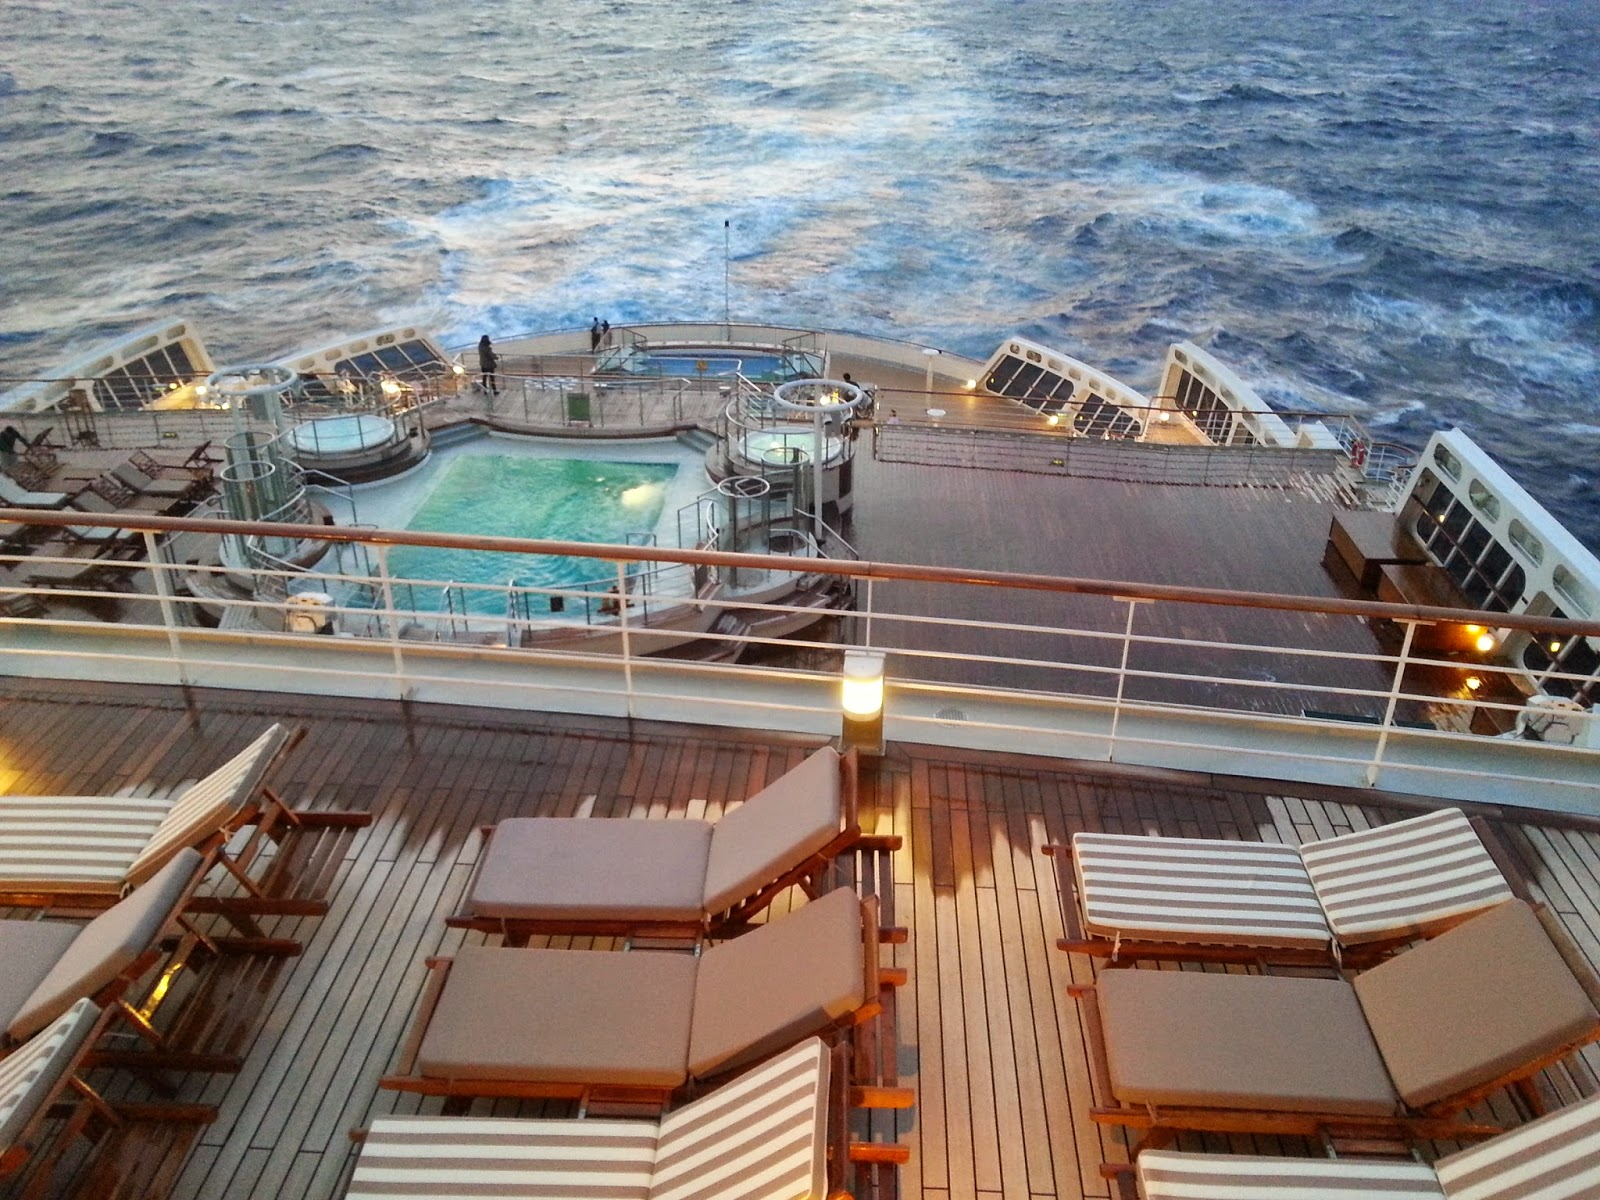 Queen Mary 2 (QM2) - Outside passenger decks and pools - Aft